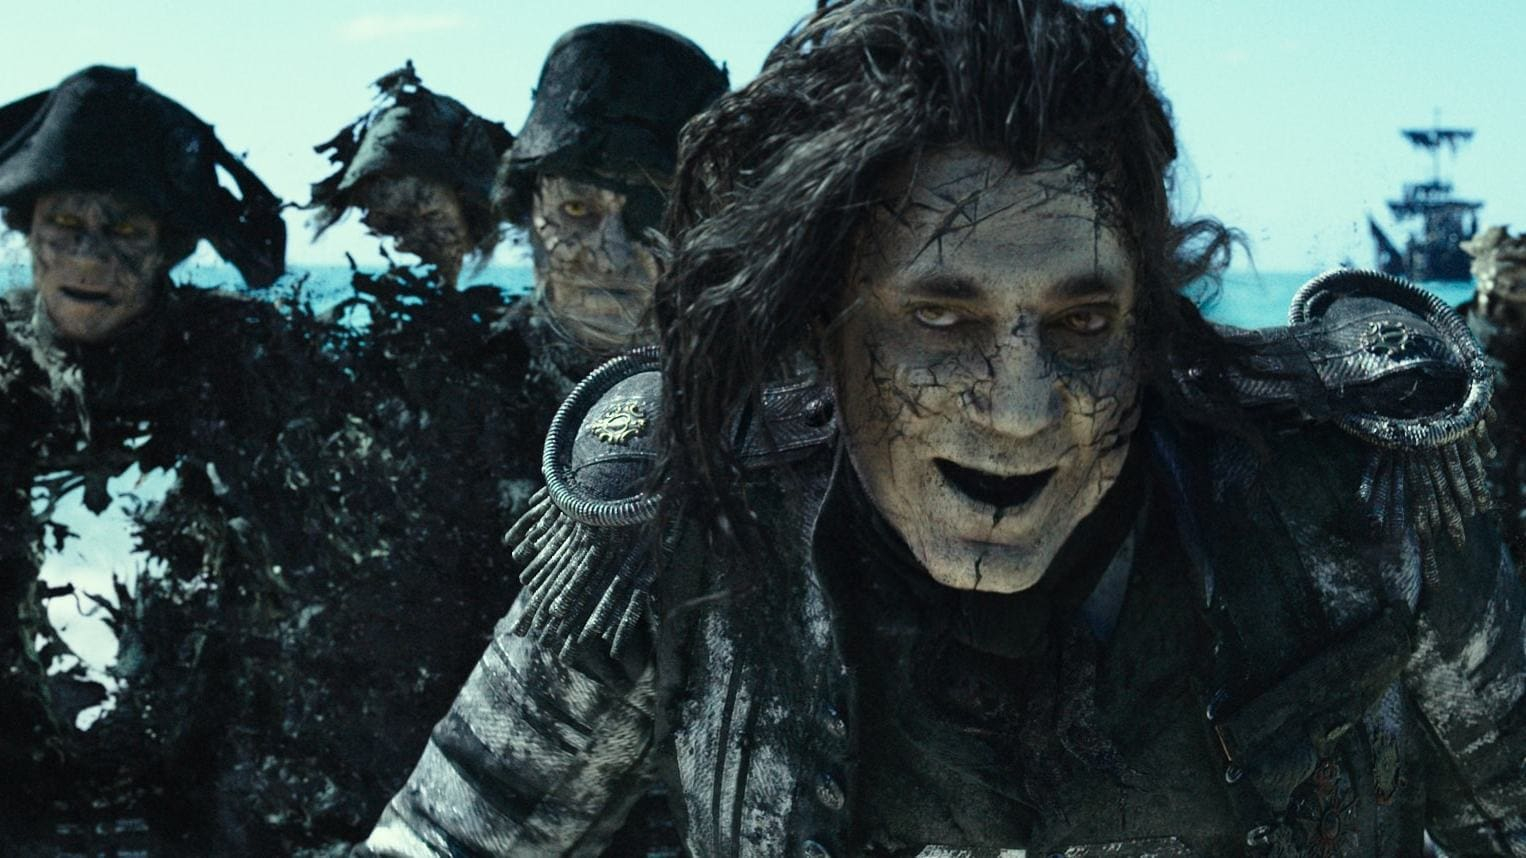 Captain Salazar, played by Javier Bardem, with his crew in the movie Pirates of the Caribbean: Dead Men Tell No Tales